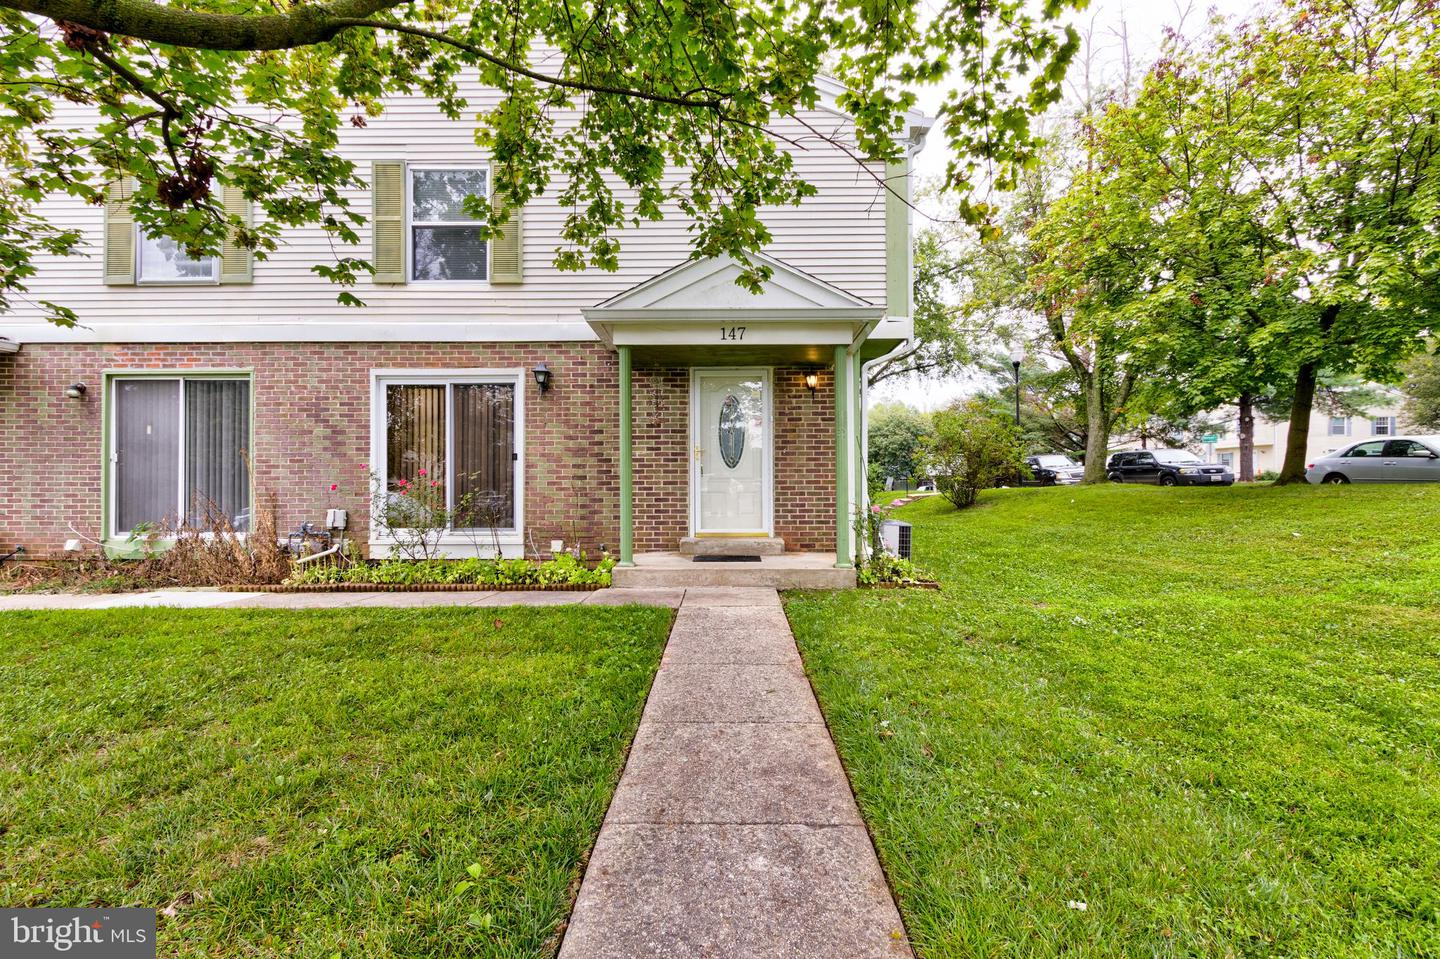 147 Hammershire Road  #A - Reisterstown, Maryland 21136